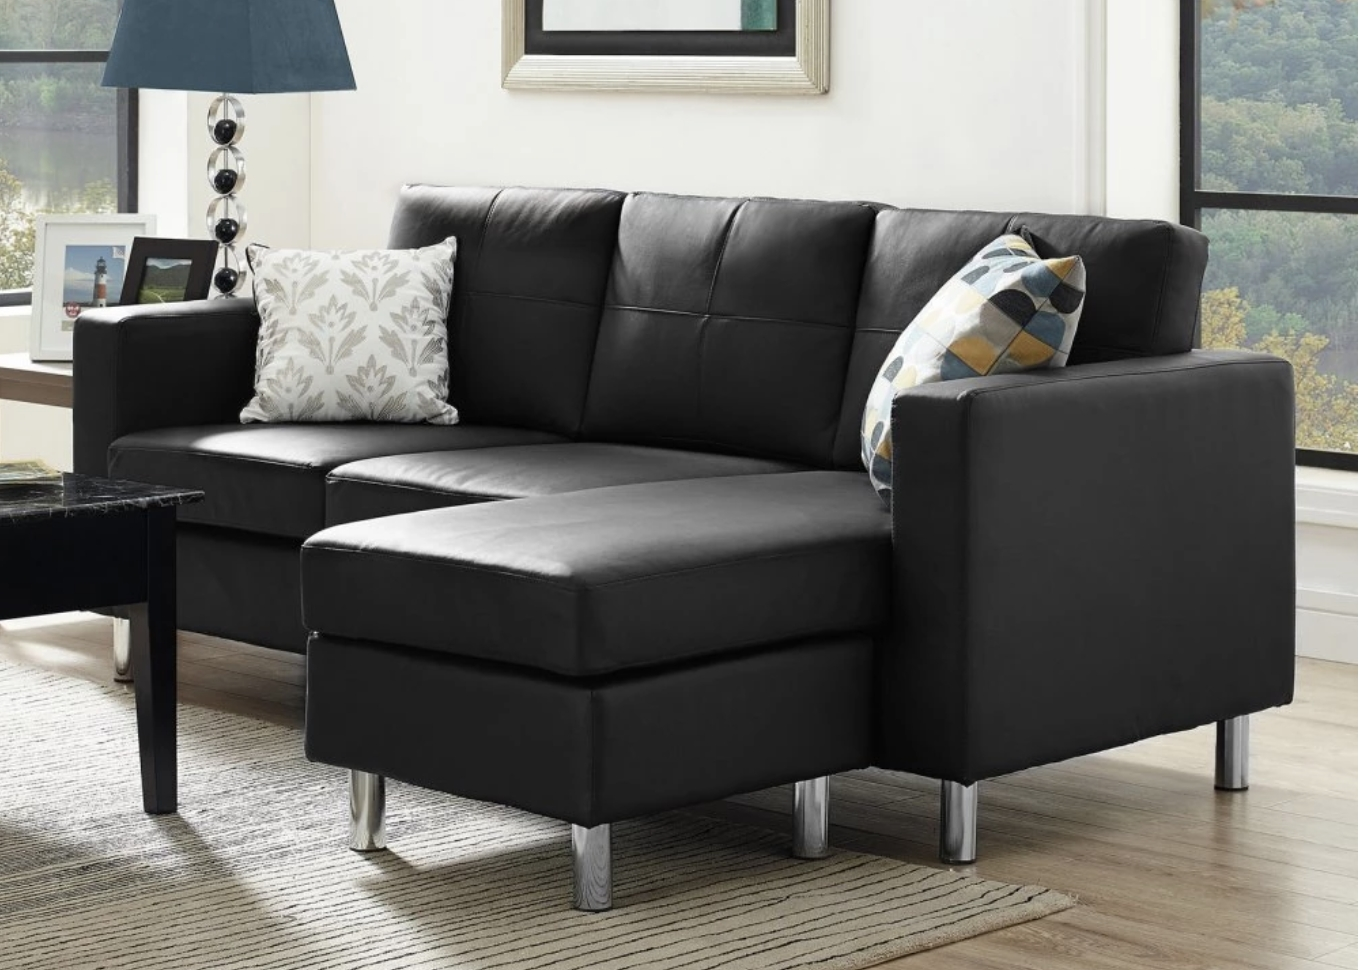 75 Modern Sectional Sofas For Small Spaces (2018) Throughout Widely Used Small Spaces Sectional Sofas (View 1 of 20)